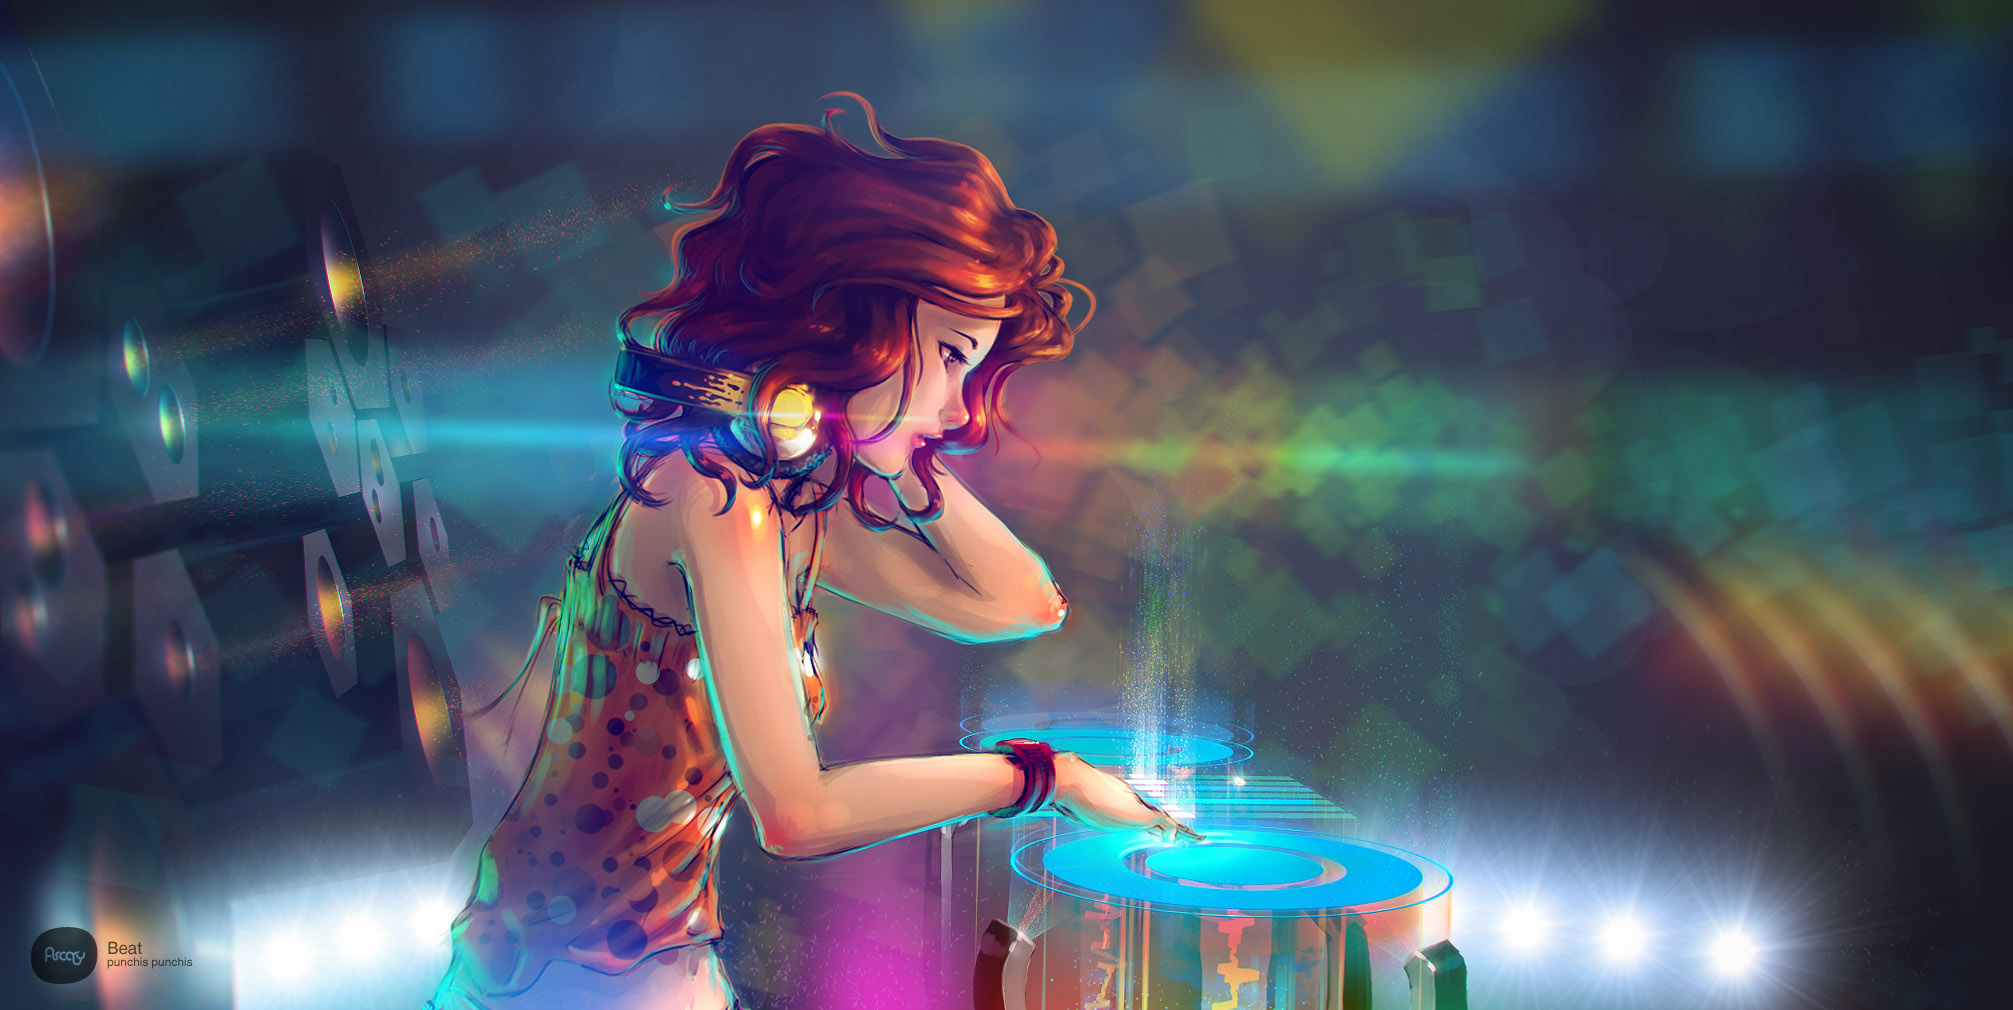 Amazing Wallpaper Girl Headphones Beat Coolvibe Digital Artcoolvibe Digital Art